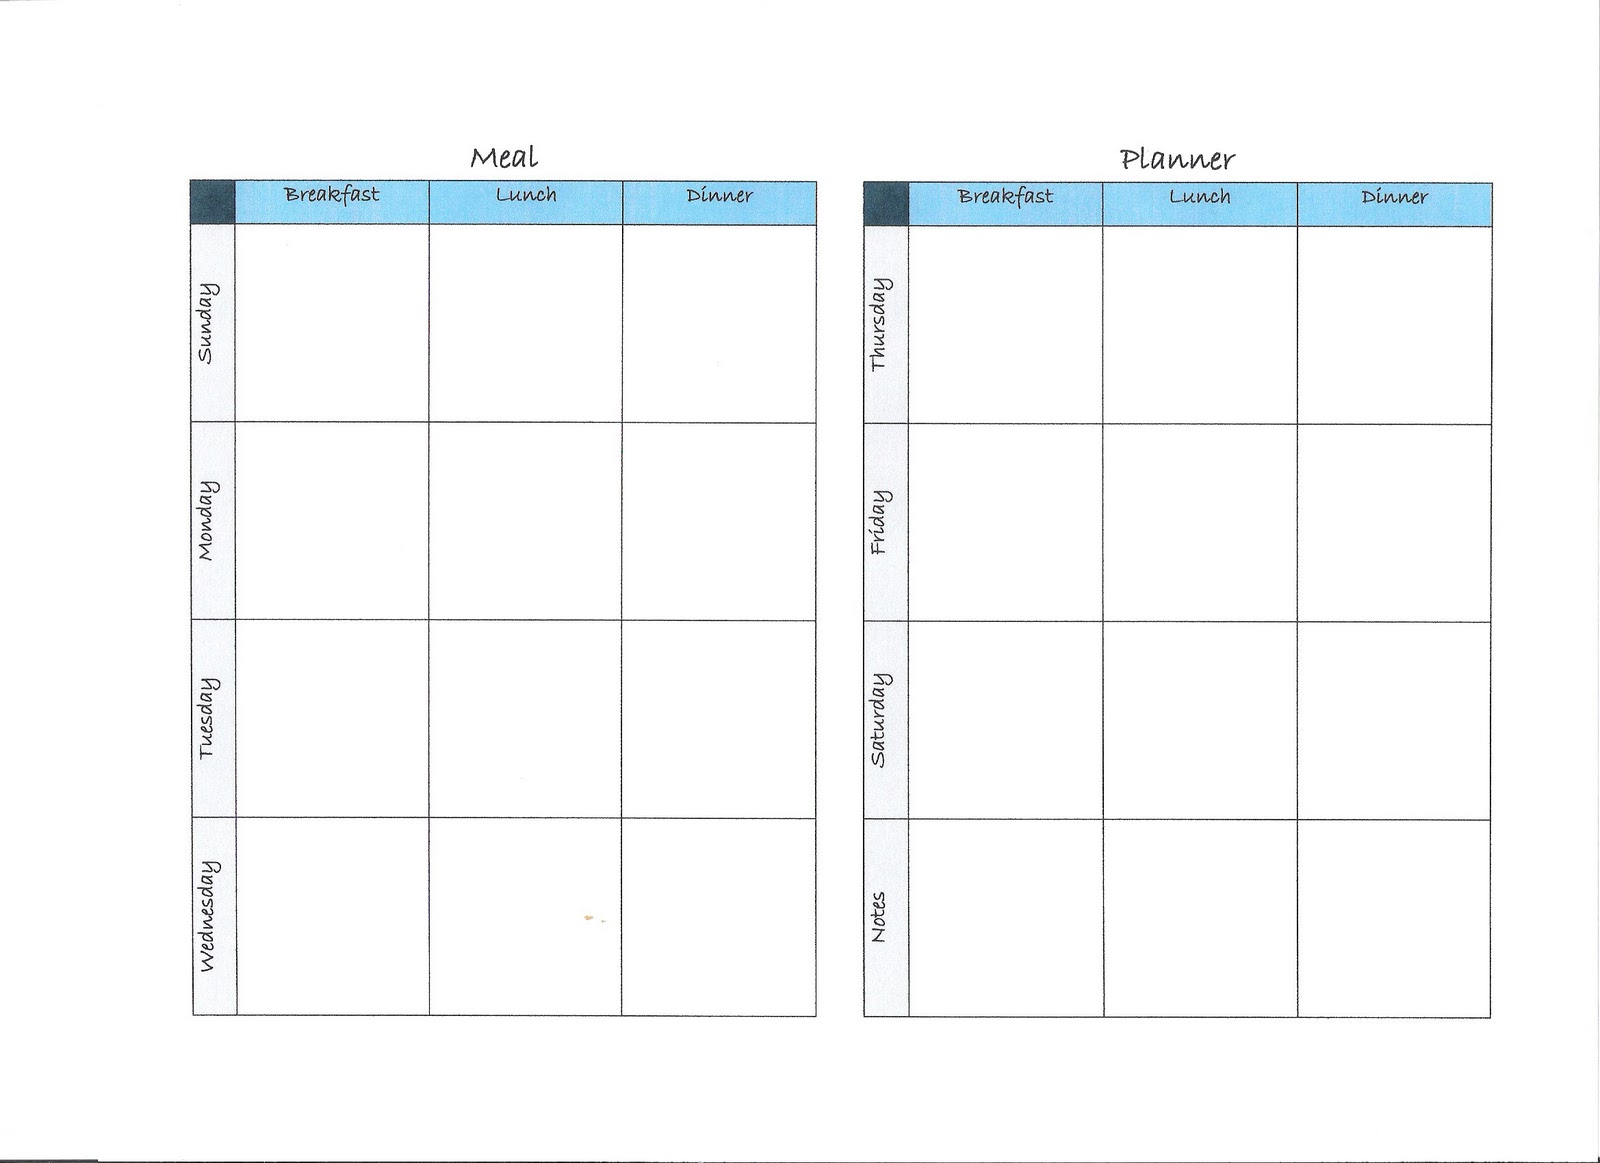 One week planner calendar template 2016 for Two week meal plan template